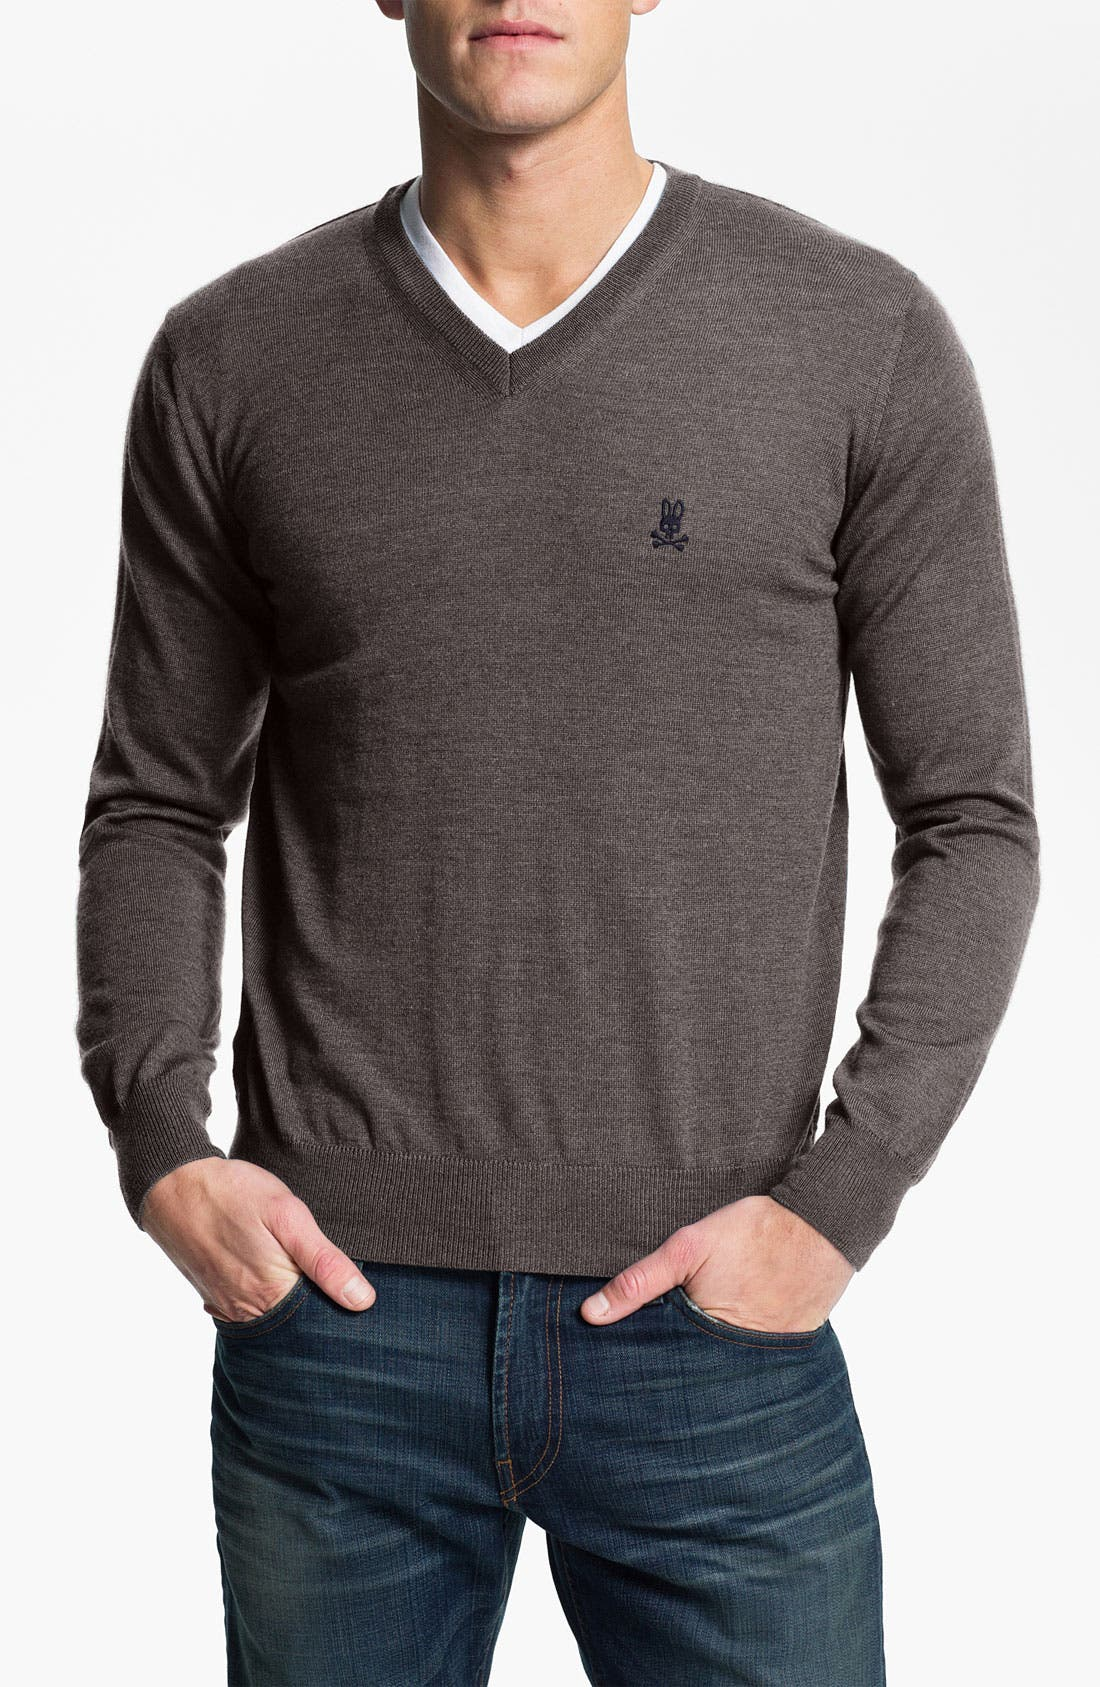 Alternate Image 1 Selected - Psycho Bunny Merino Wool V-Neck Sweater